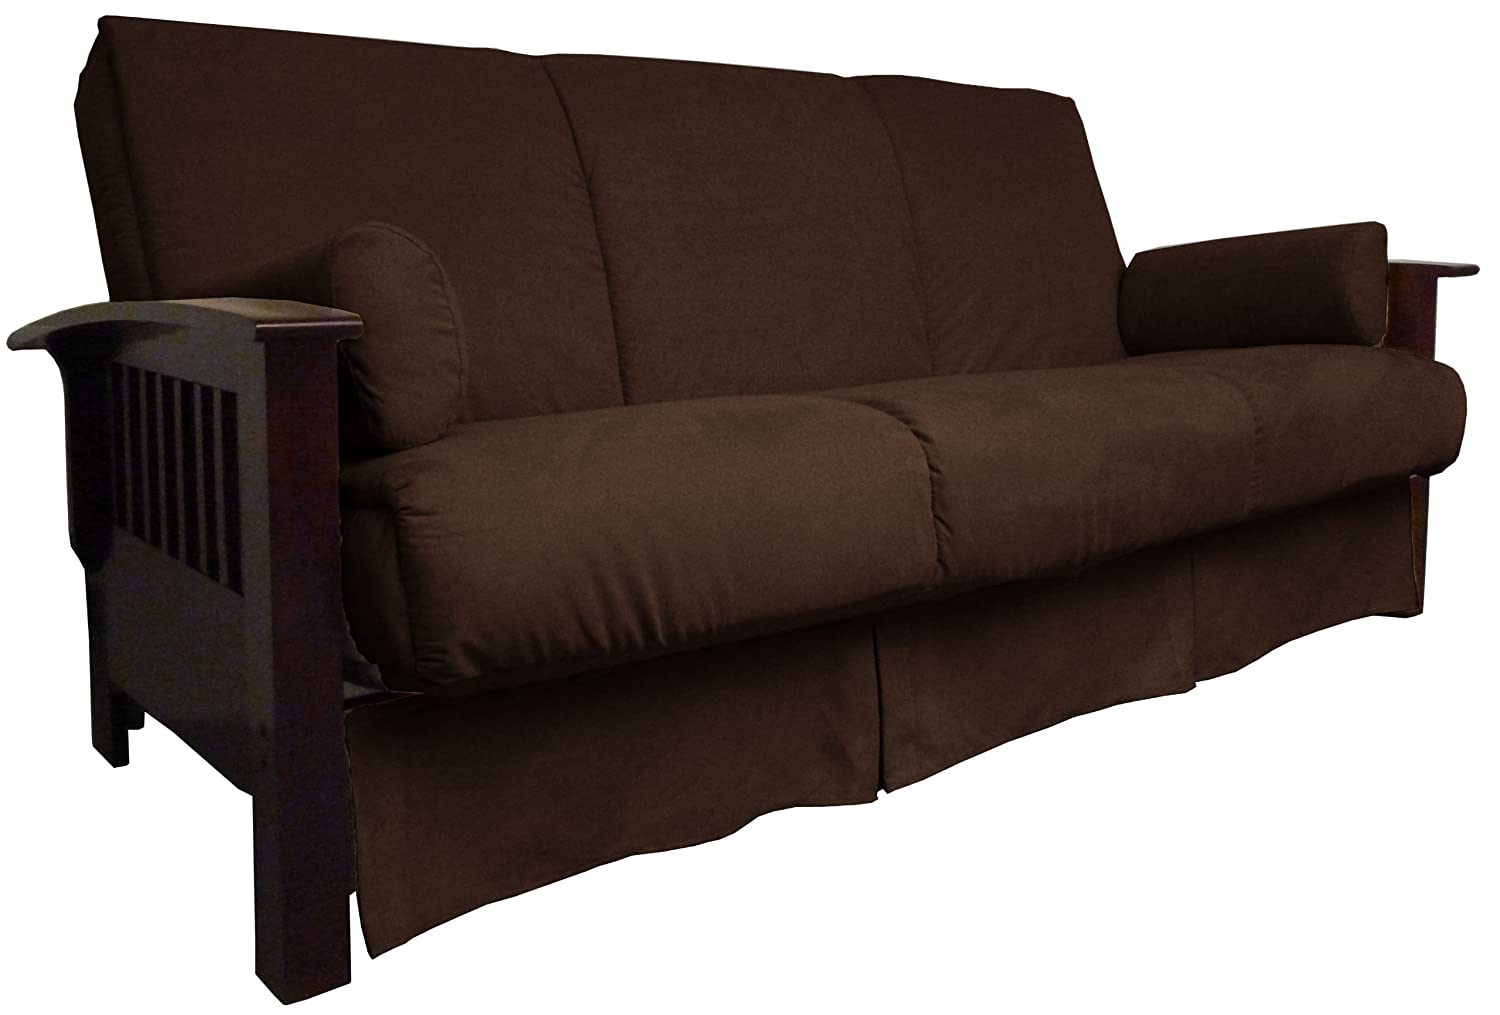 Epic Furnishings Brentwood Perfect Sit and Sleep Pillow Top Sofa Sleeper Bed - Full-size - Mahogany Frame Finish - Leather